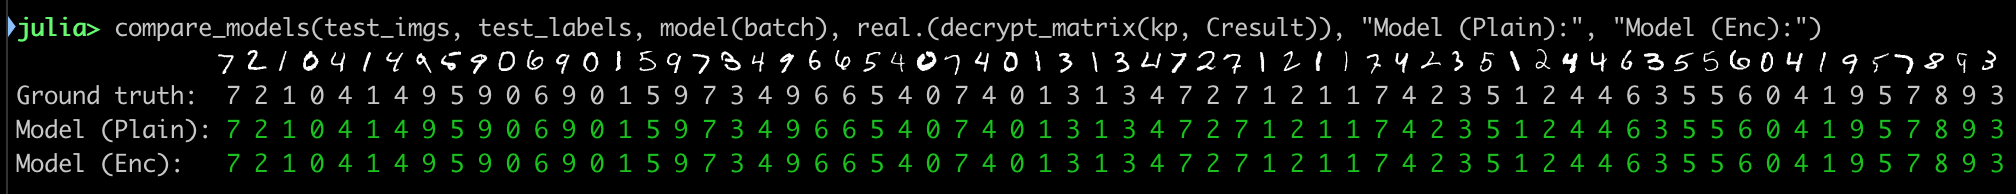 Machine Learning on Encrypted Data Without Decrypting It